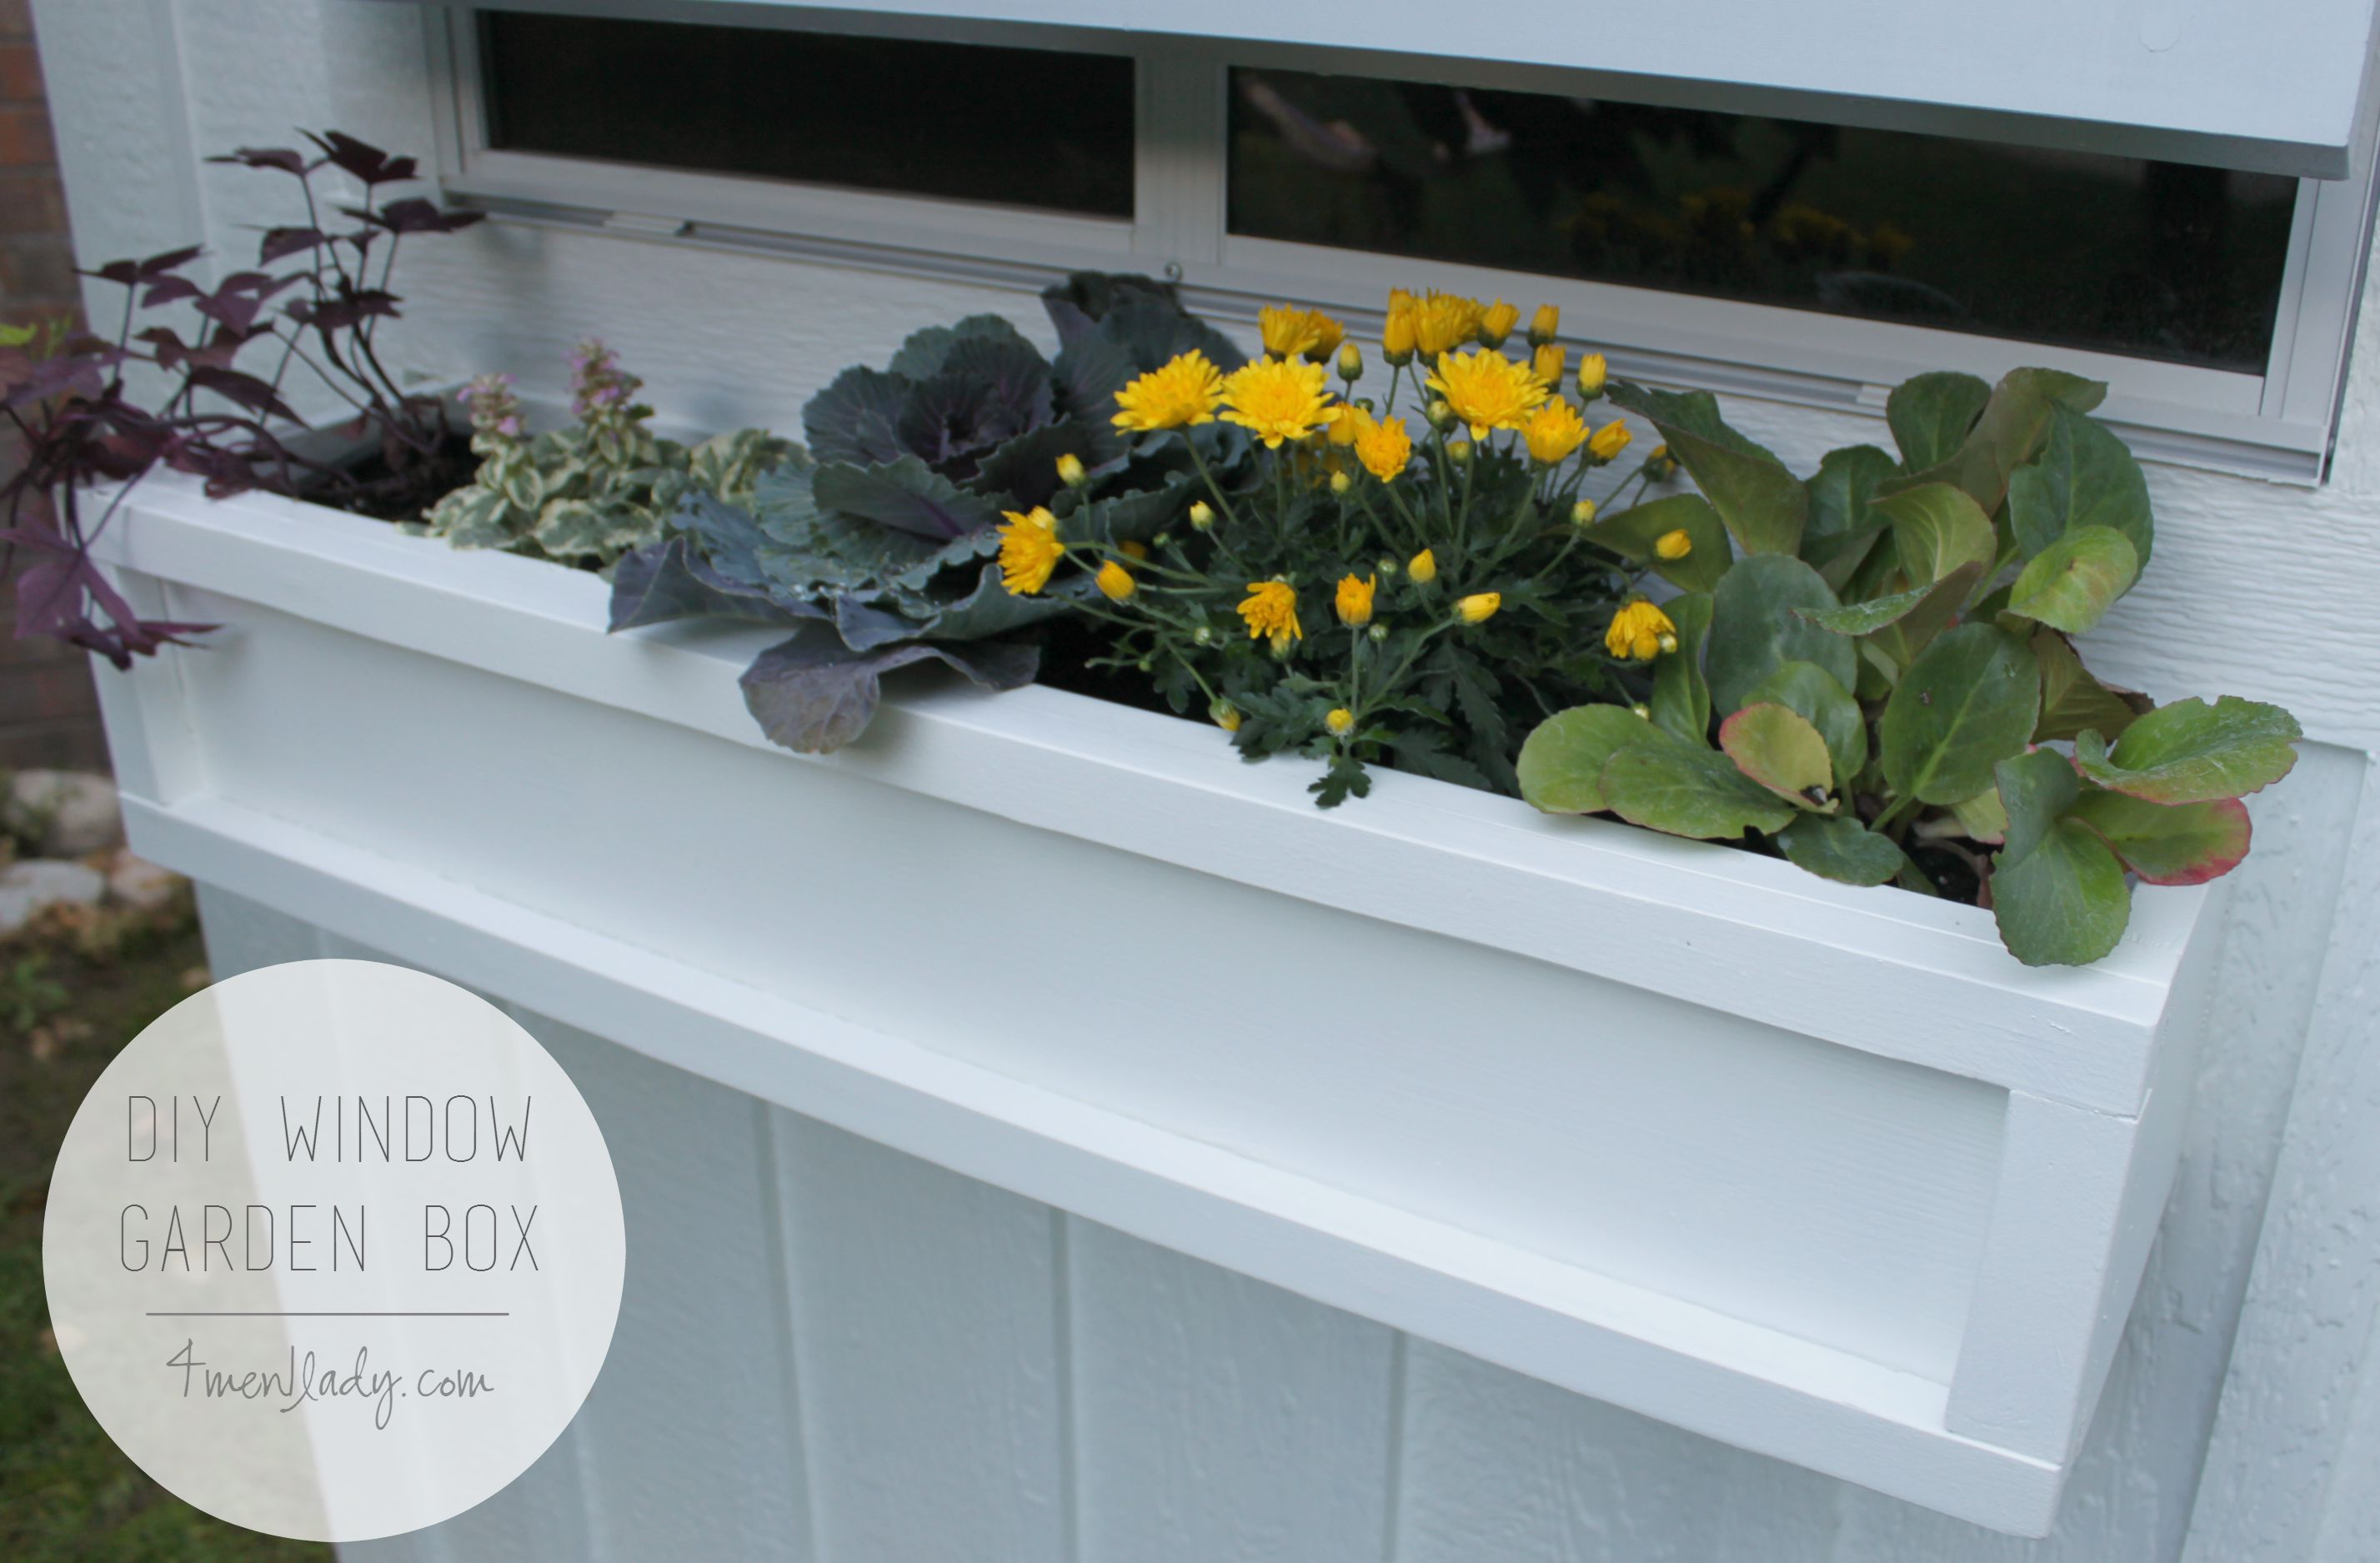 diy window garden boxes. Black Bedroom Furniture Sets. Home Design Ideas